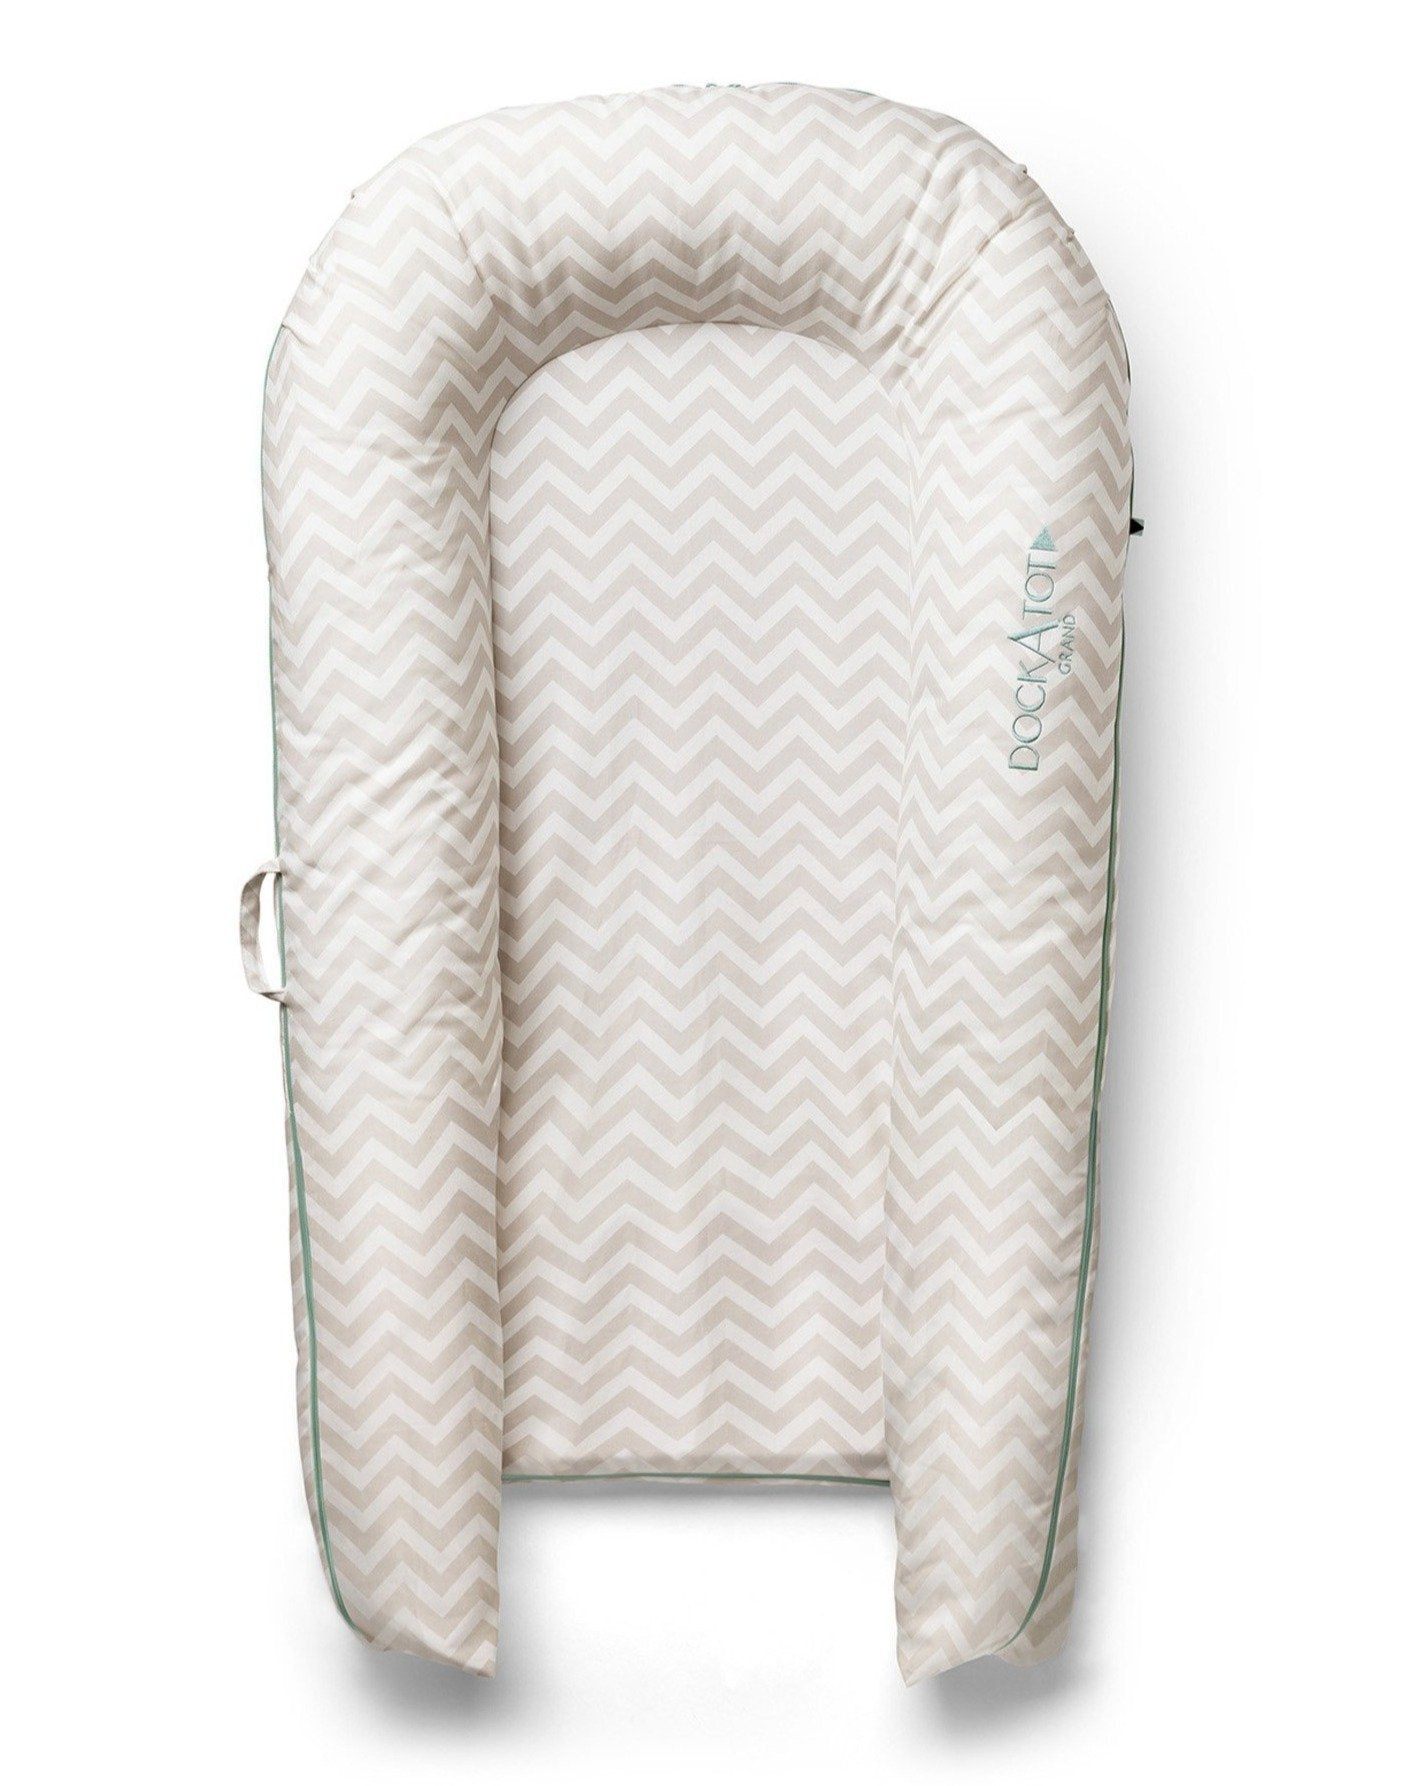 Load image into Gallery viewer, Grand Cover - Silver Lining (Chevron) | DockATot Baby Accessories Lounger